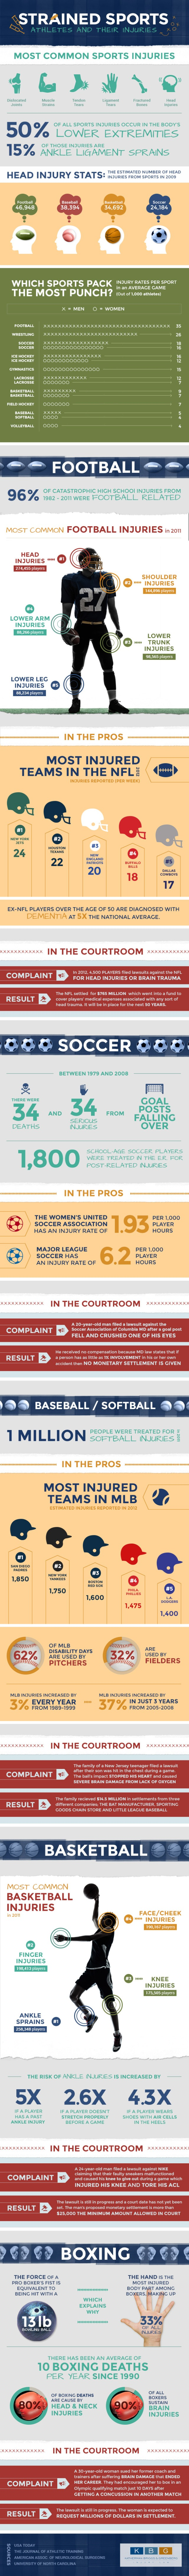 Sports Injuries Infographic